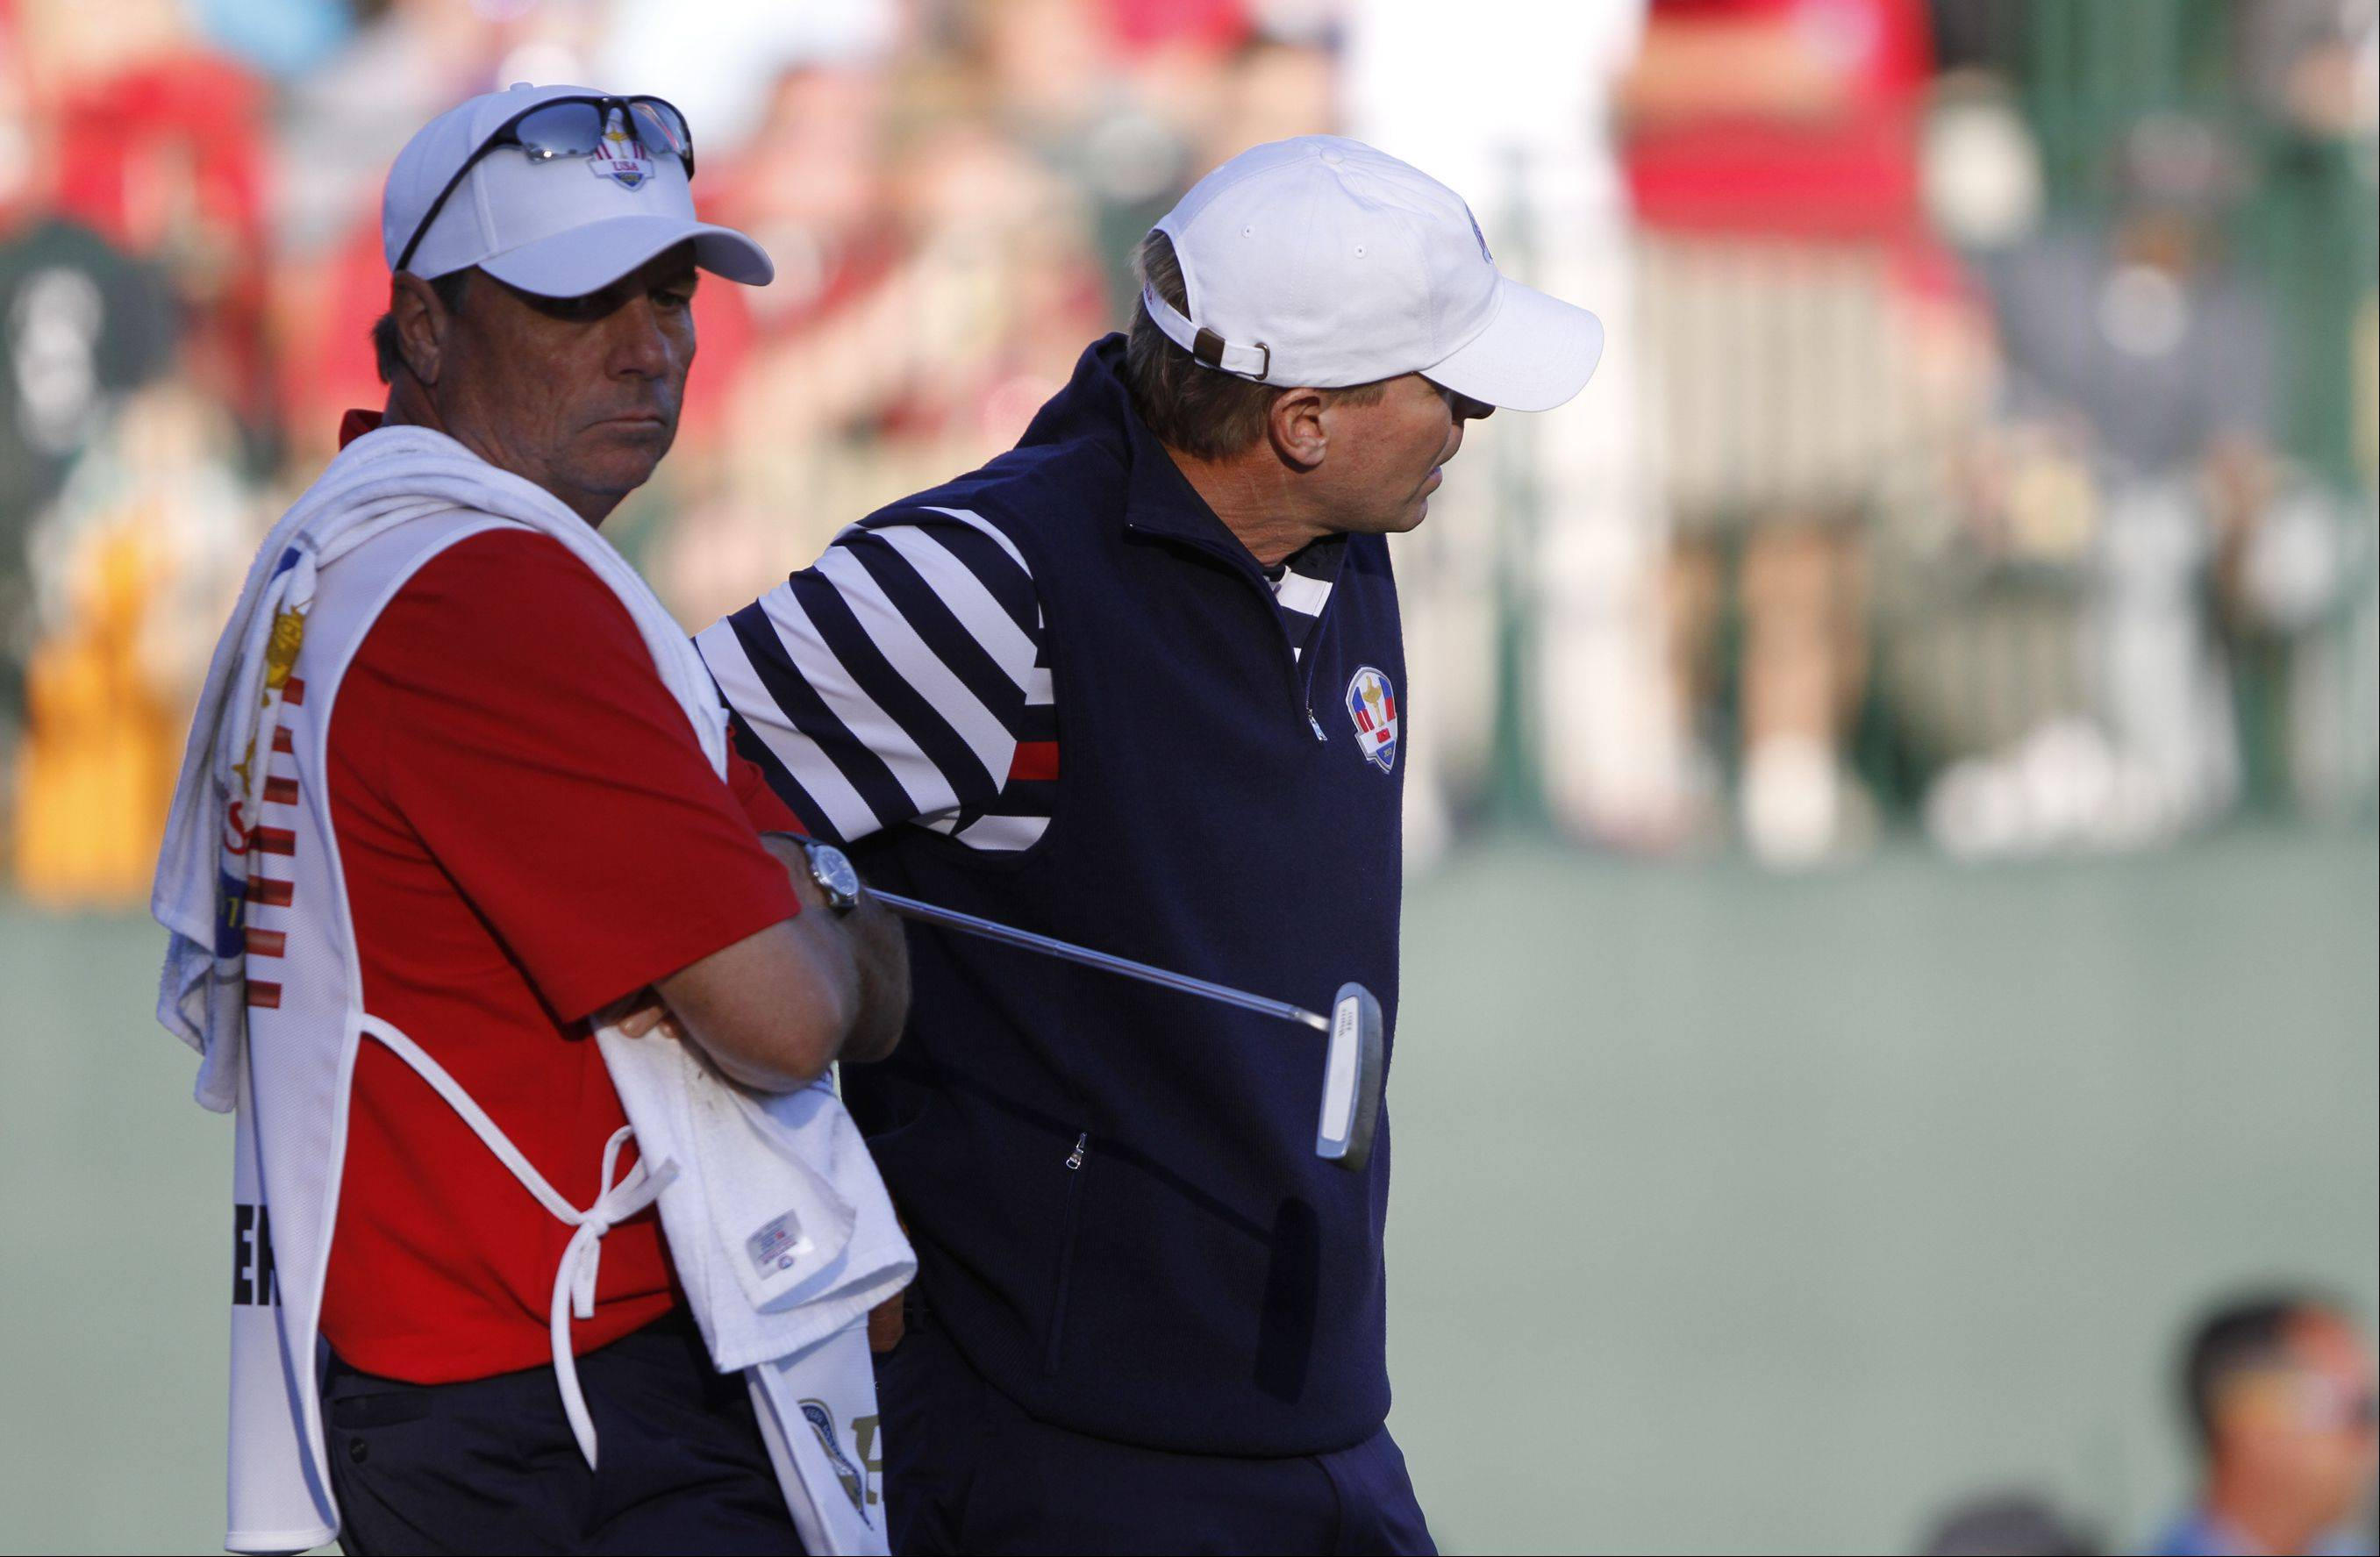 Steve Stricker and his caddy look glum after Stricker missed a putt on the 18th that sealed the European victory Sunday at the 2012 Ryder Cup at Medinah Country Club.